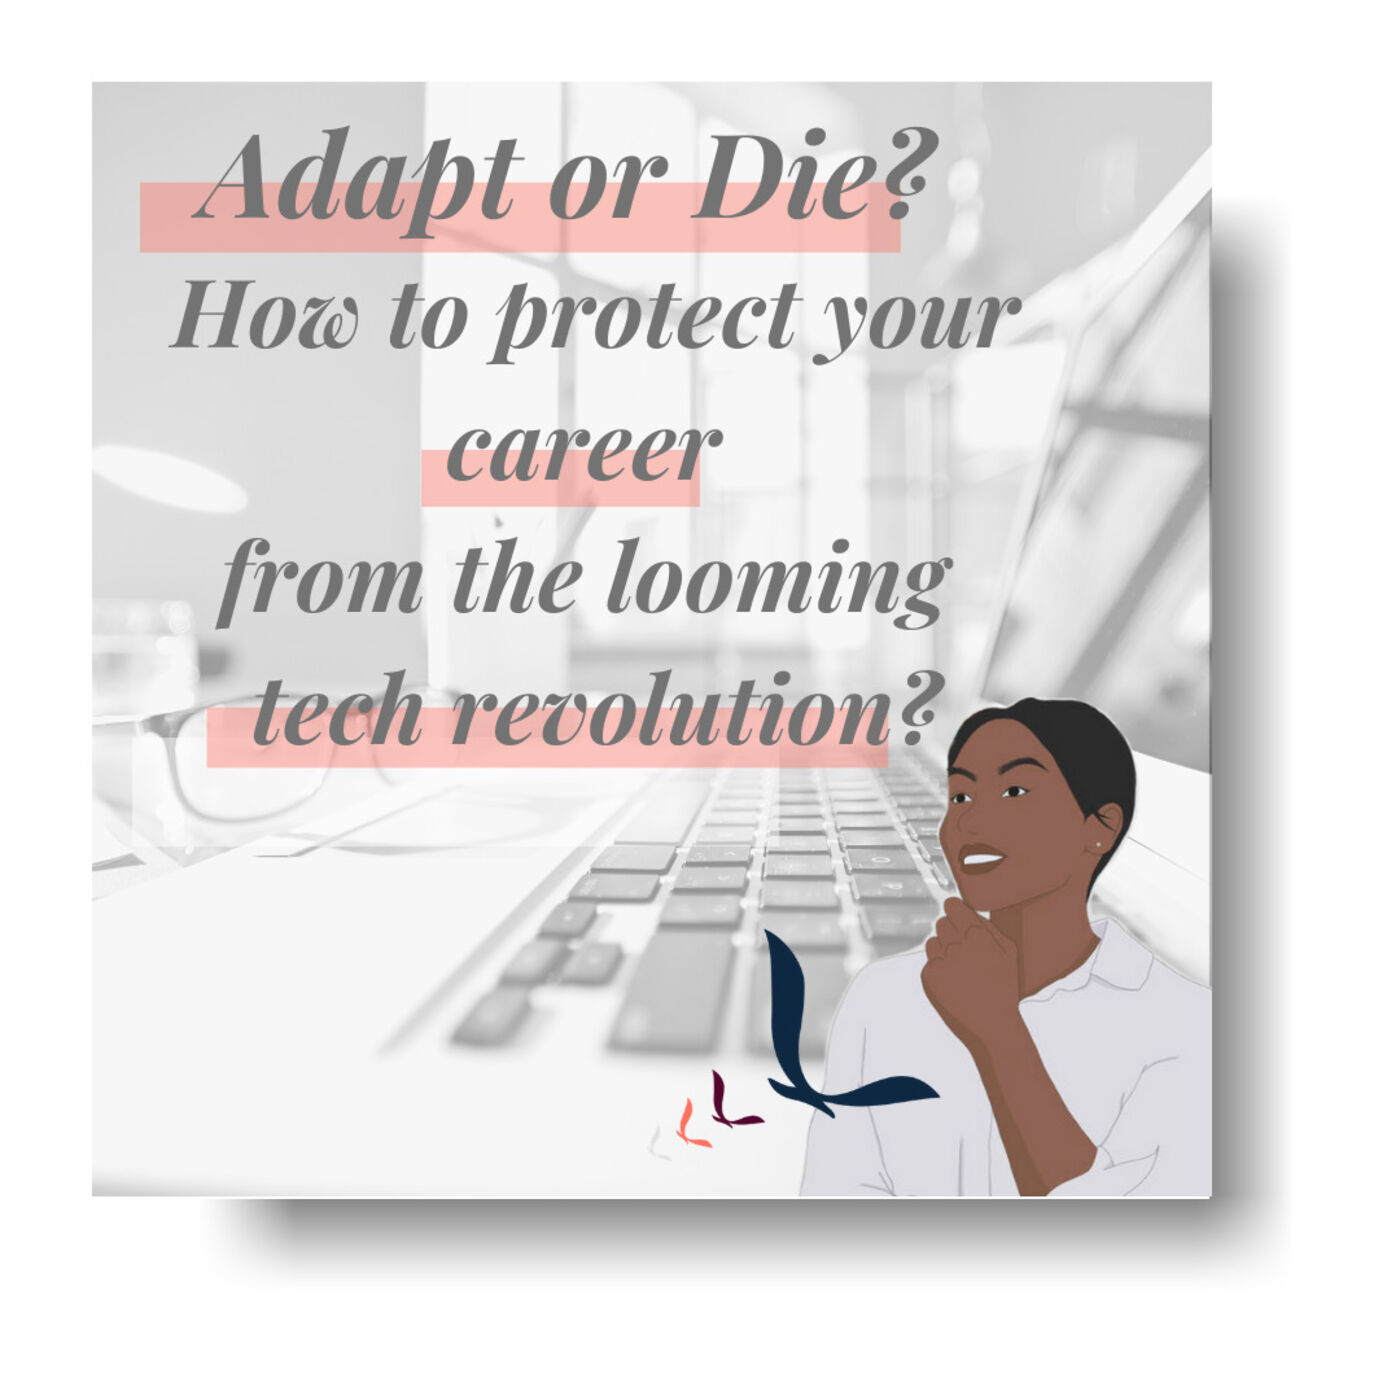 Adapt Or Die? How To Protect Your Career From The Looming Tech Revolution